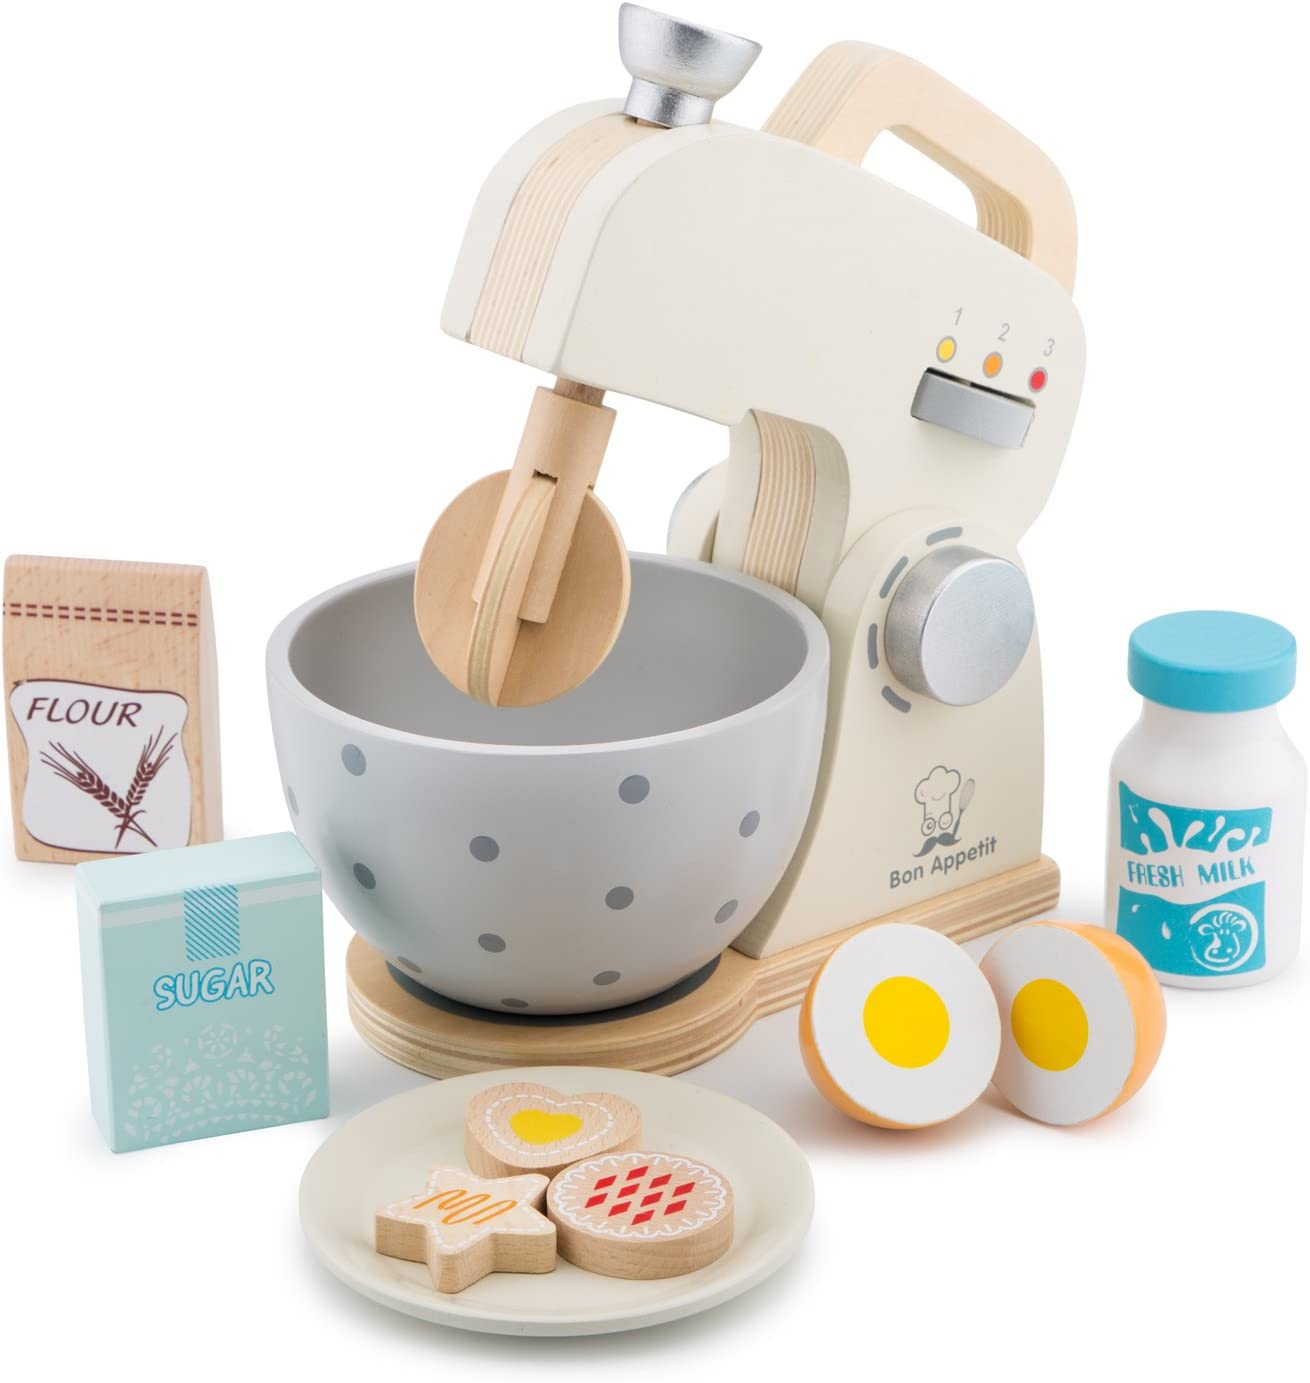 New Classic Toys Wooden Mixer Set Pretend Play Toy for Kids Cooking Simulation Educational Toys and Color Perception Toy for Preschool Age Toddlers Boys Girls